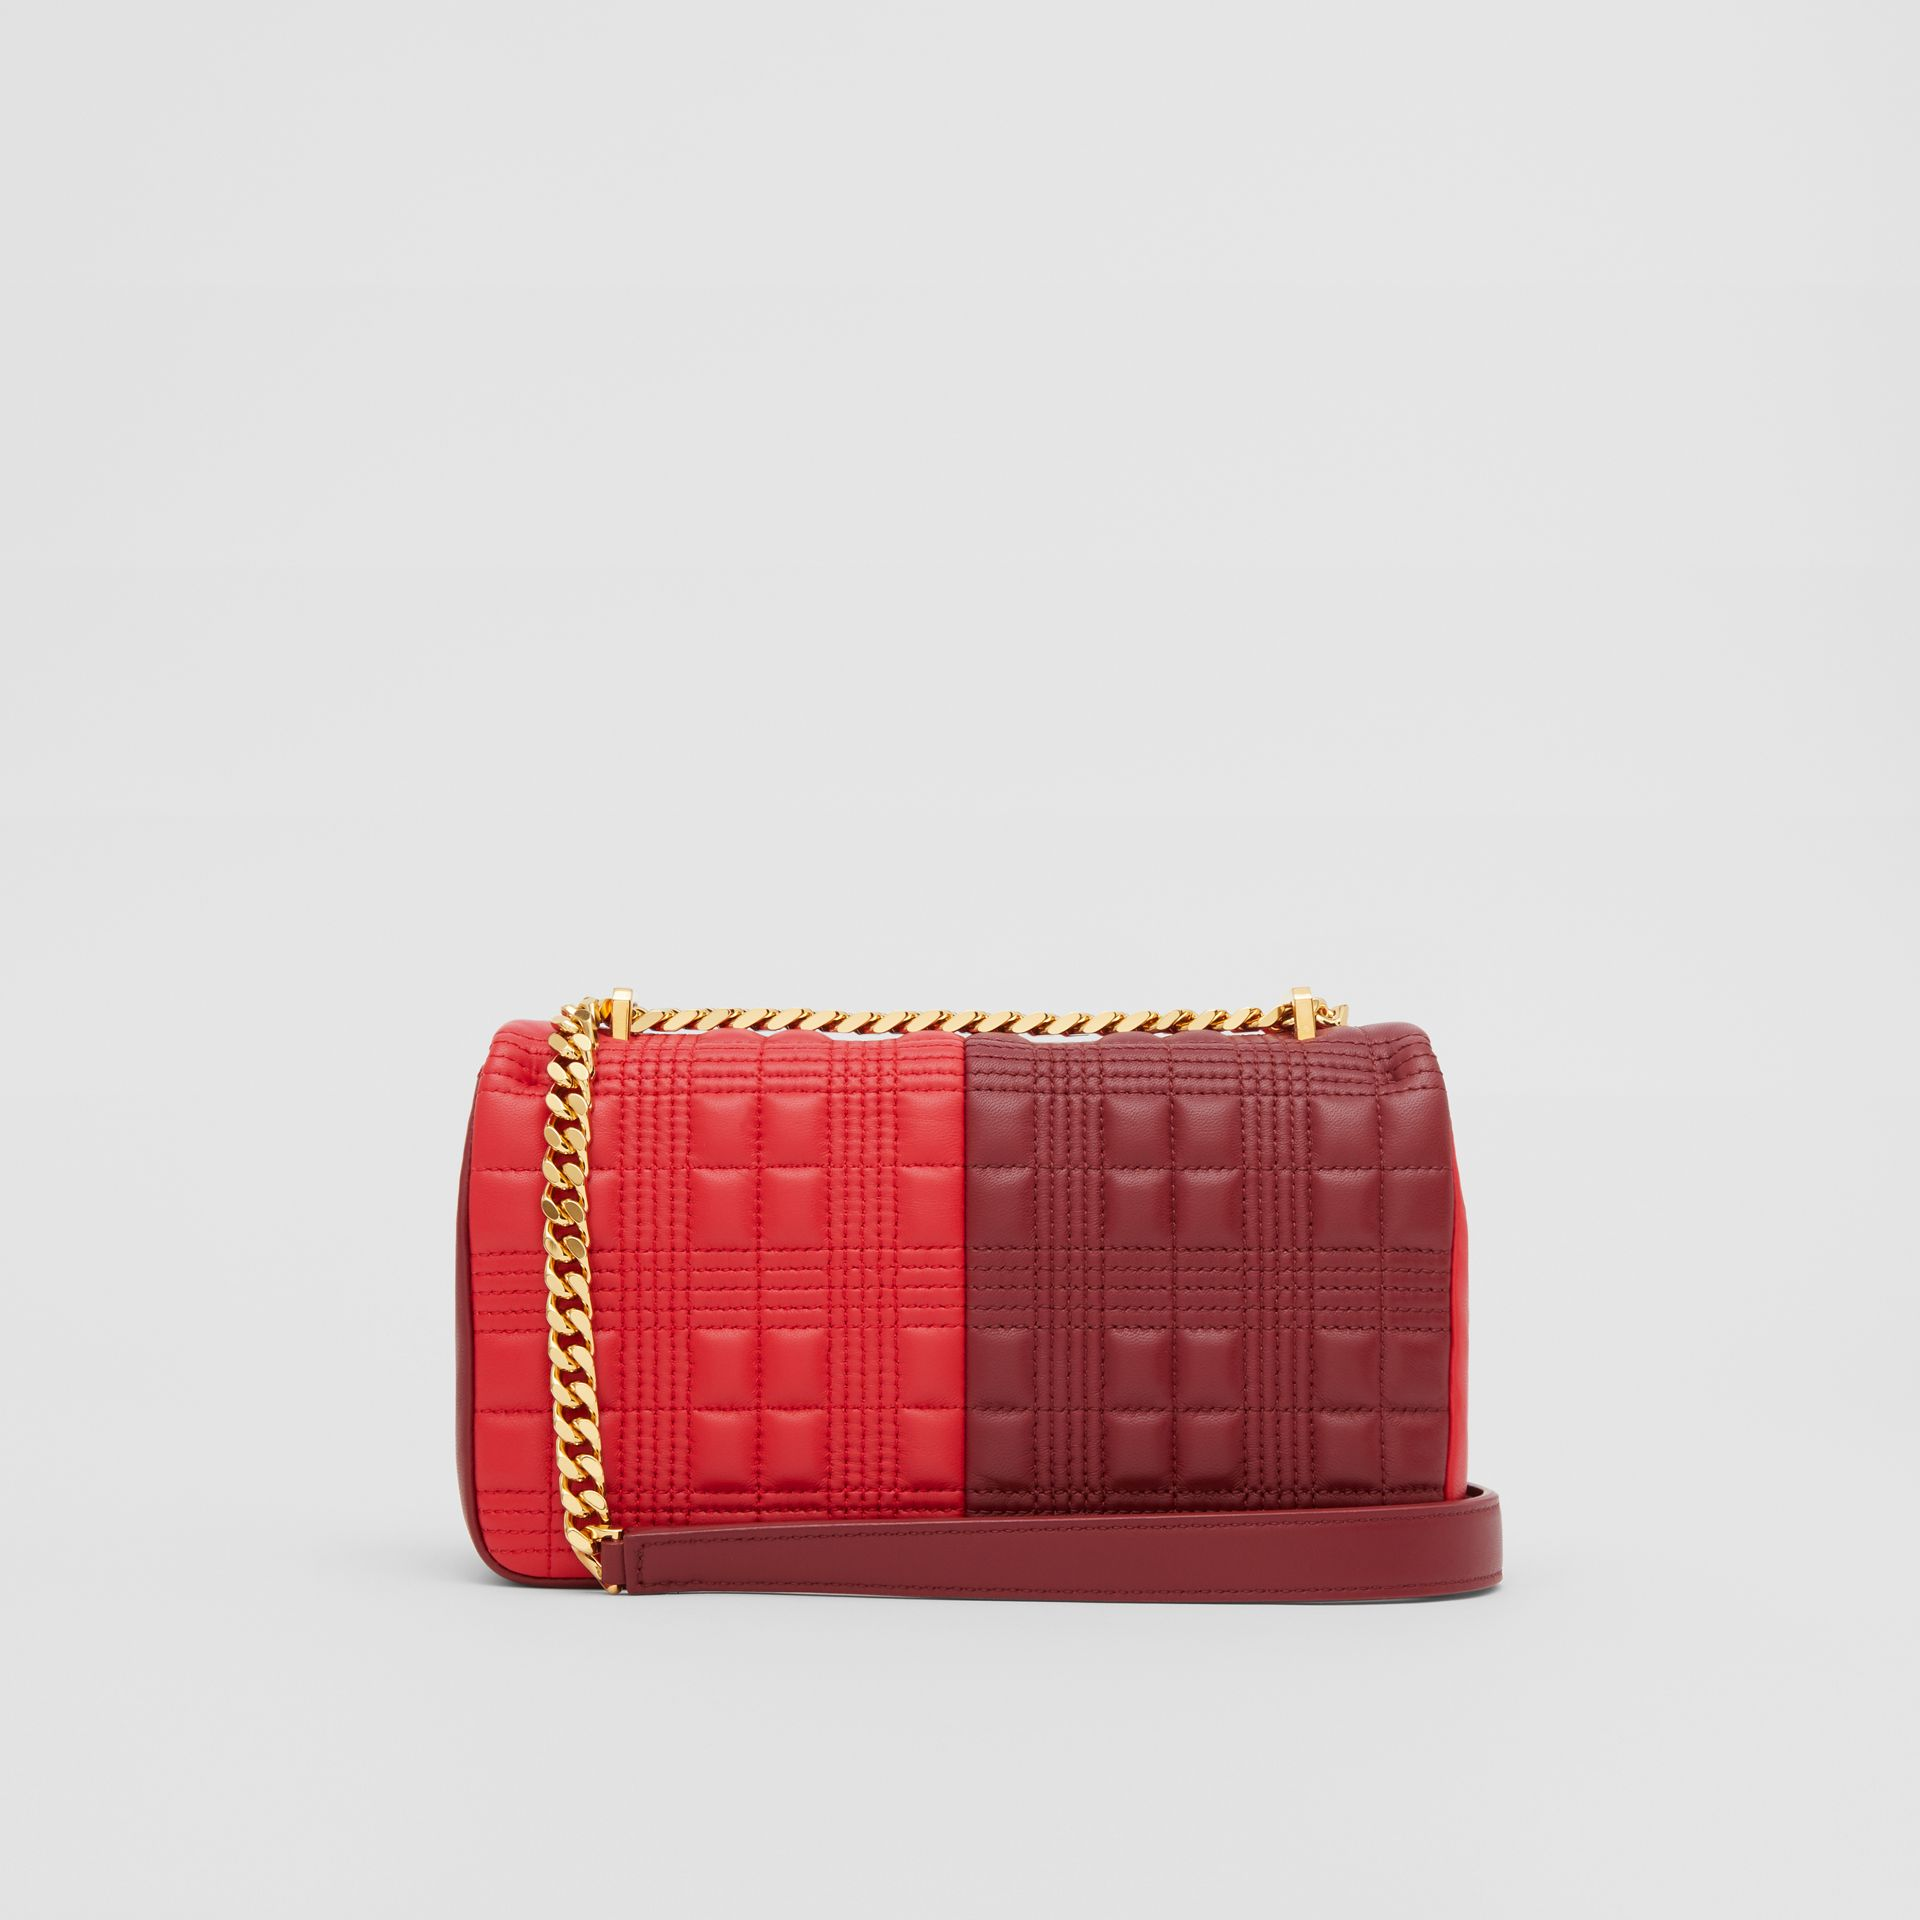 Small Quilted Colour Block Lambskin Lola Bag in Bright Red/burgundy - Women | Burberry United Kingdom - gallery image 7